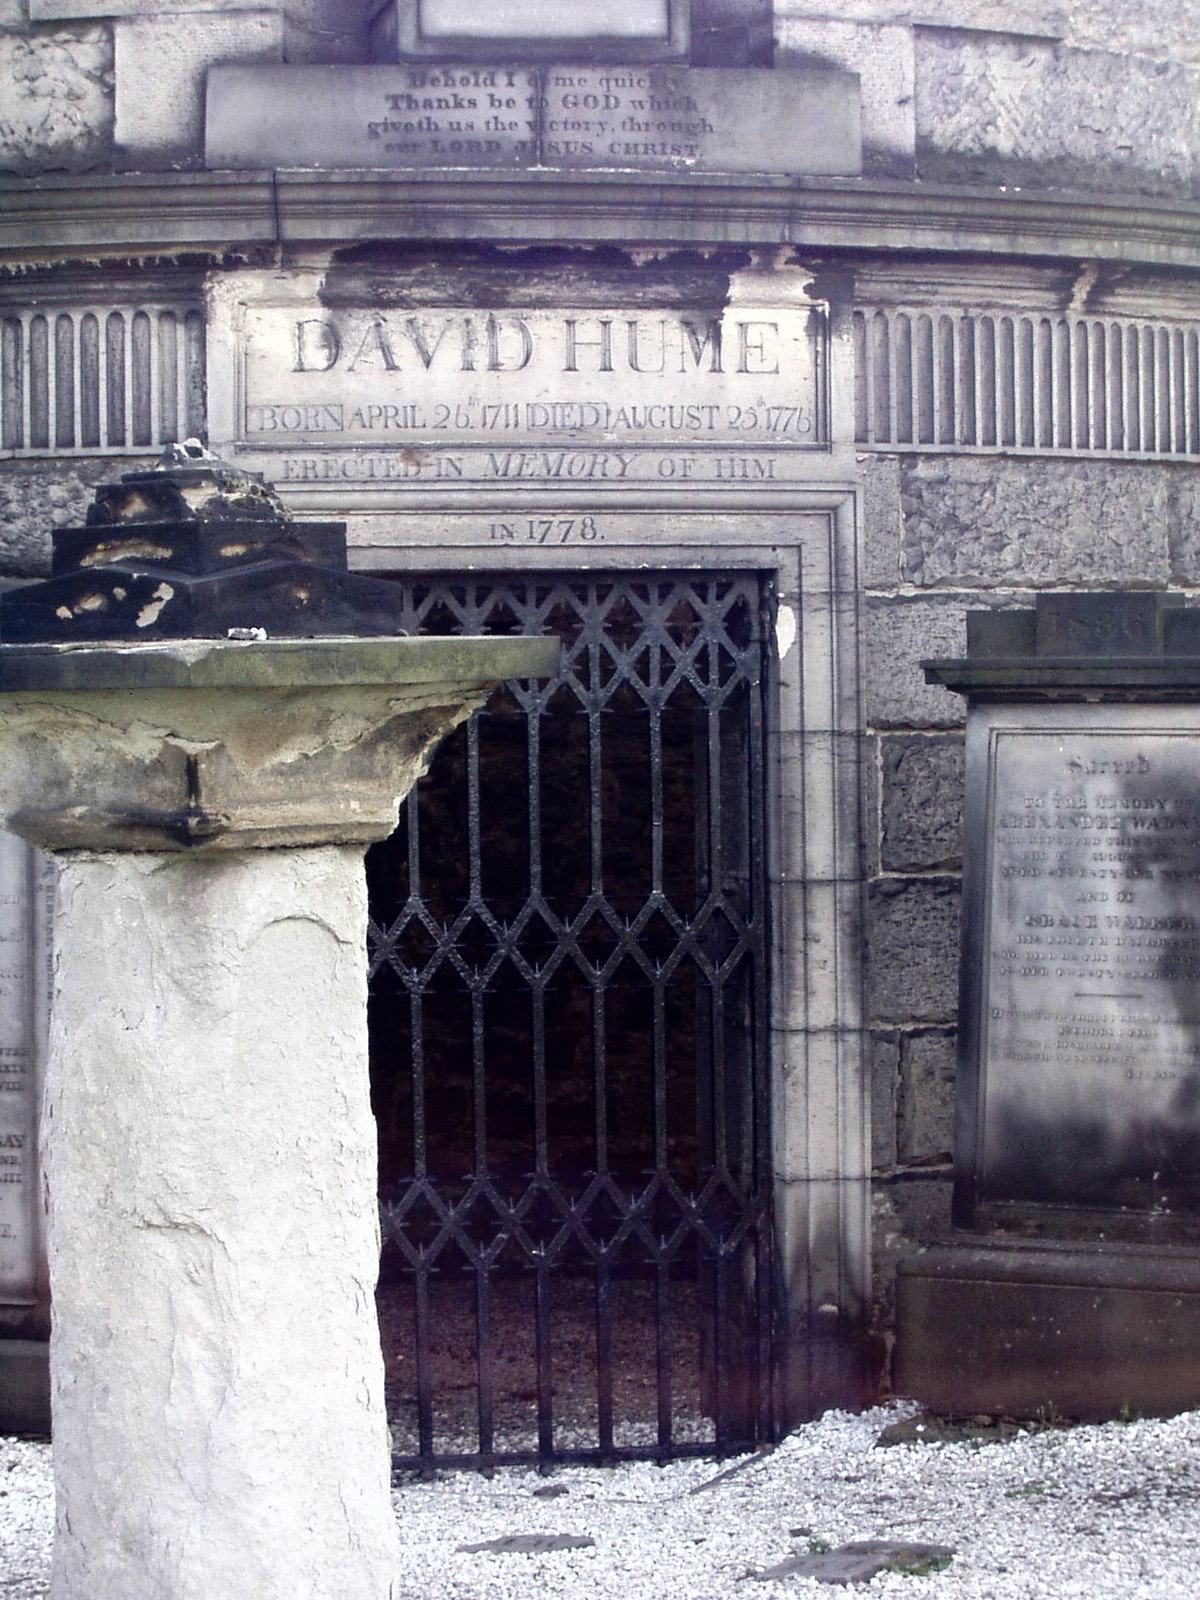 studies in the philosophy of david hume david hume s grave